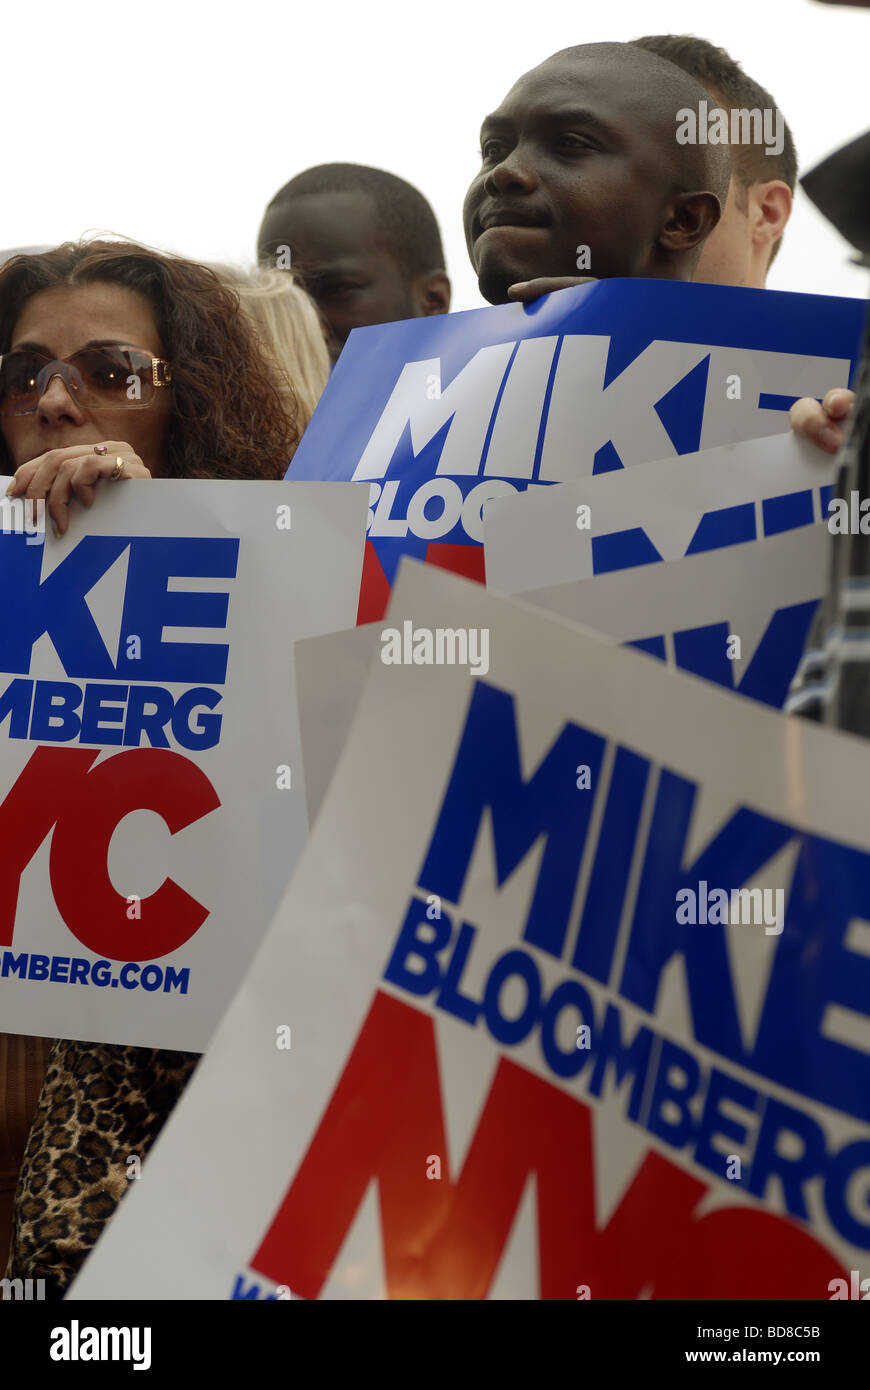 Supporters of New York Mayor Mike Bloomberg at a press conference - Stock Image